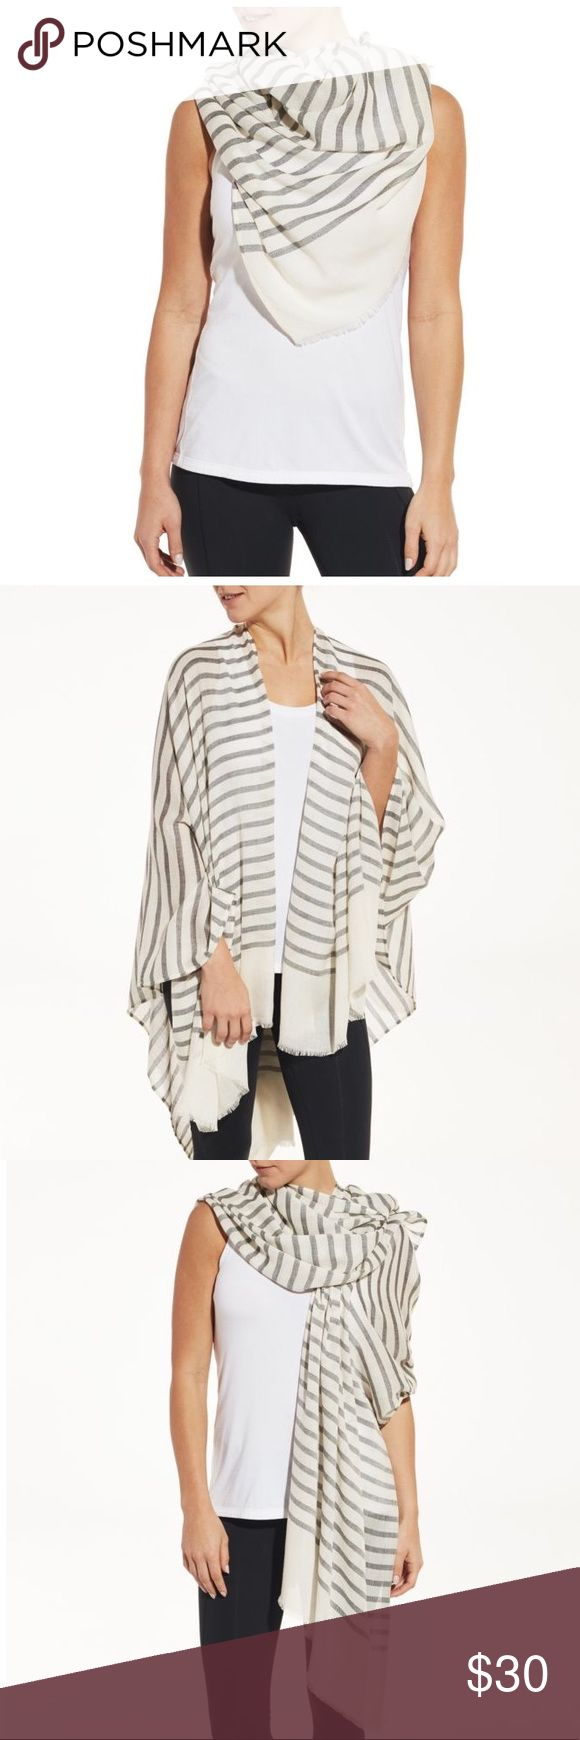 Calia by Carrie Underwood striped cream scarf New with tags! With up to four ways to wear, the CALIA™ by Carrie Underwood Women's Striped Woven Convertible Scarf is your ultimate on-the-go piece for all seasons. In cool weather, this soft piece can be worn as a traditional scarf or draped over your shoulders like a shawl. In warm weather, it functions perfectly as a sarong over your favorite swimwear. Stylish and versatile, the CALIA™ Striped Woven Convertible Scarf meets your comfort and…